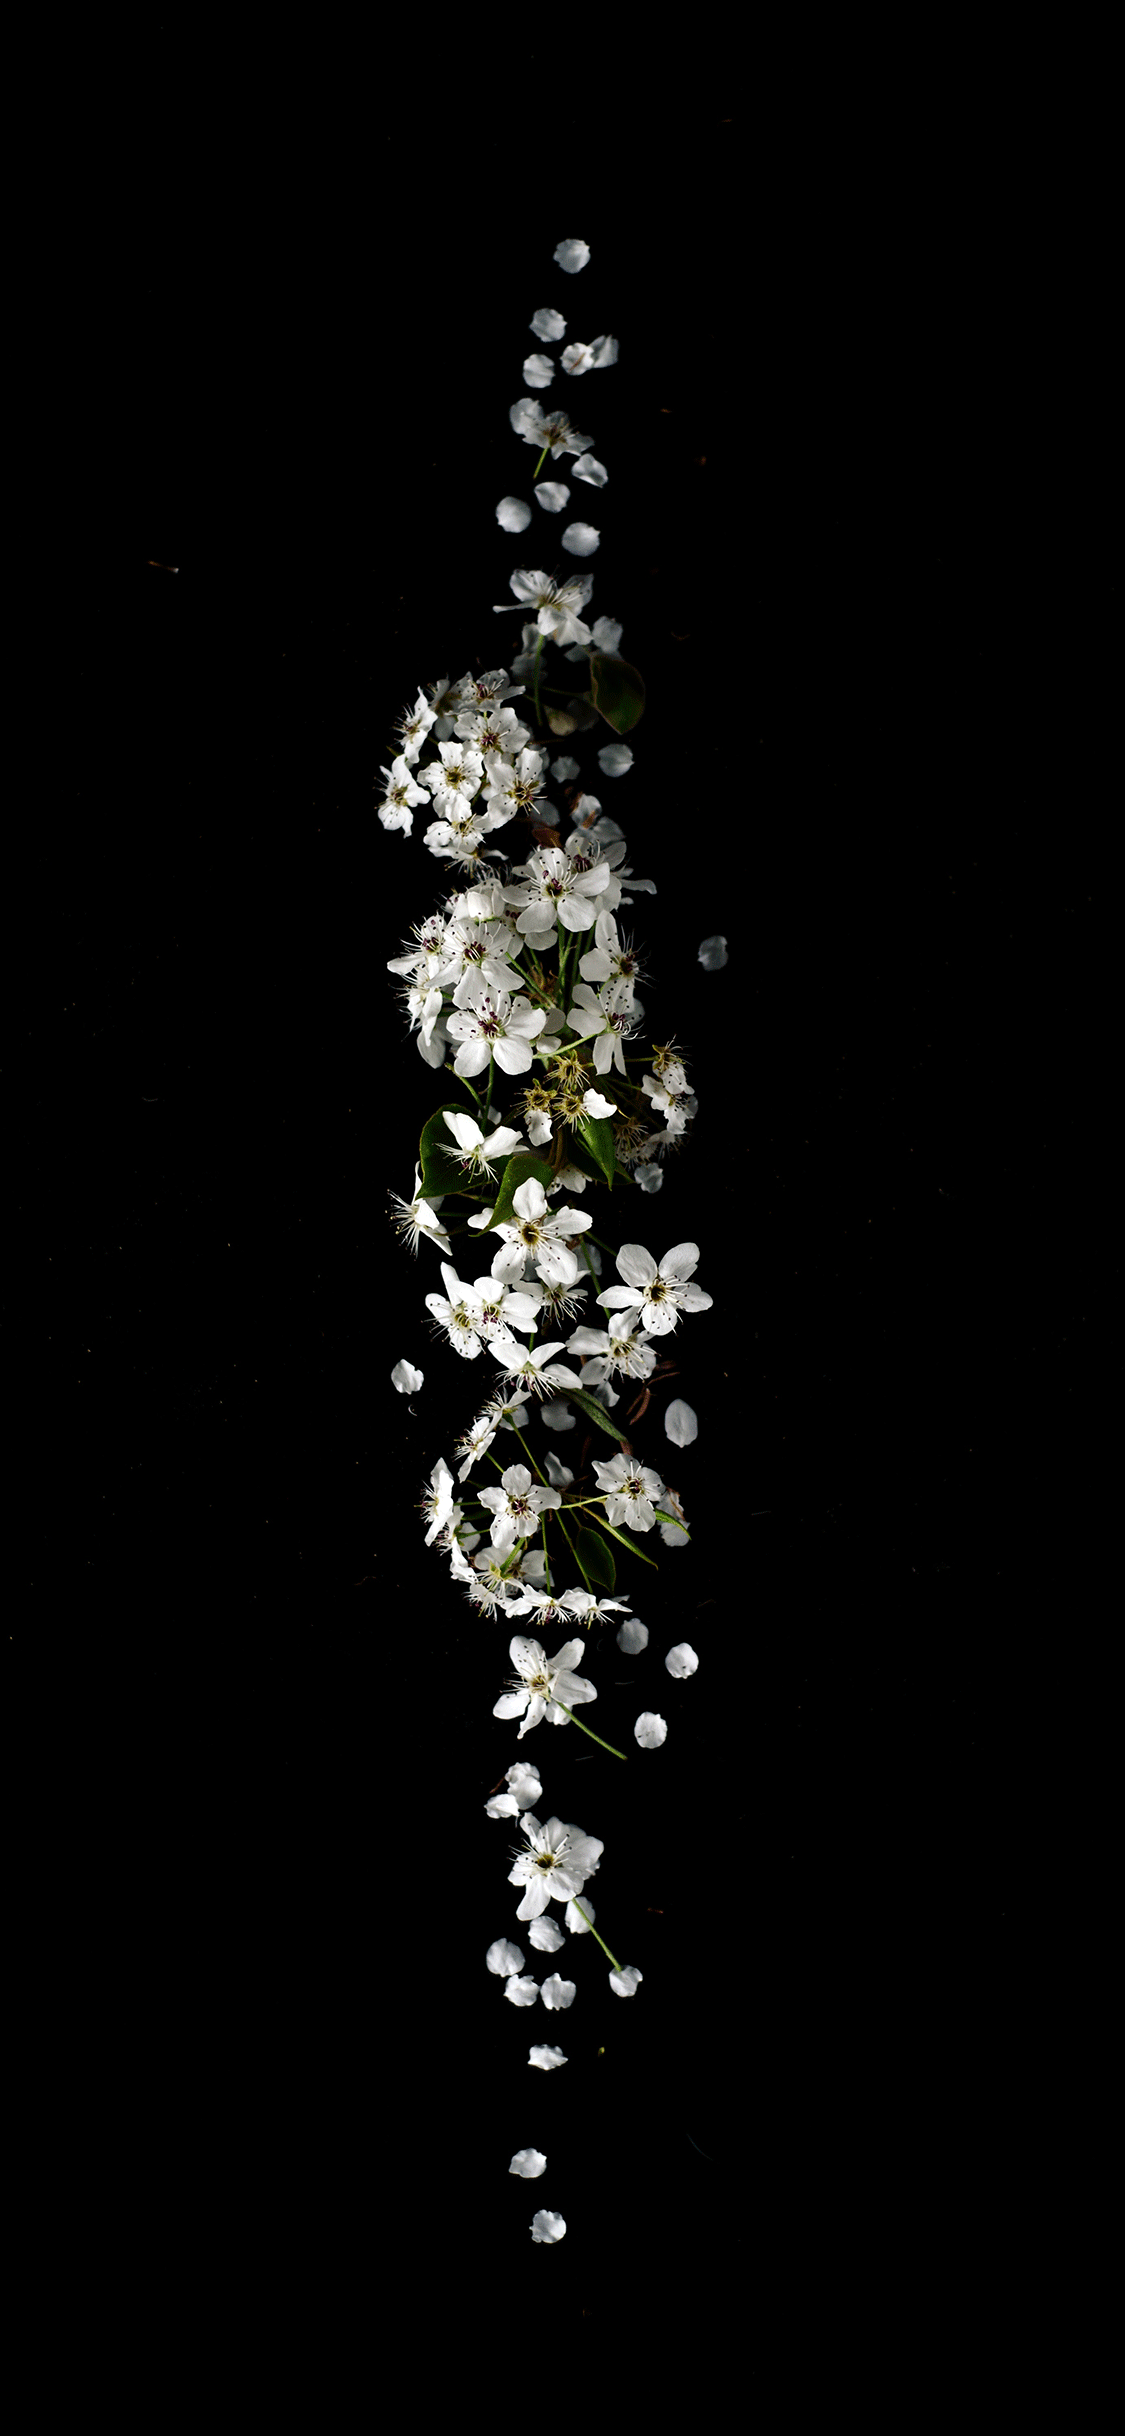 iPhone wallpaper flowers white Fonds d'écran iPhone du 15/08/2018